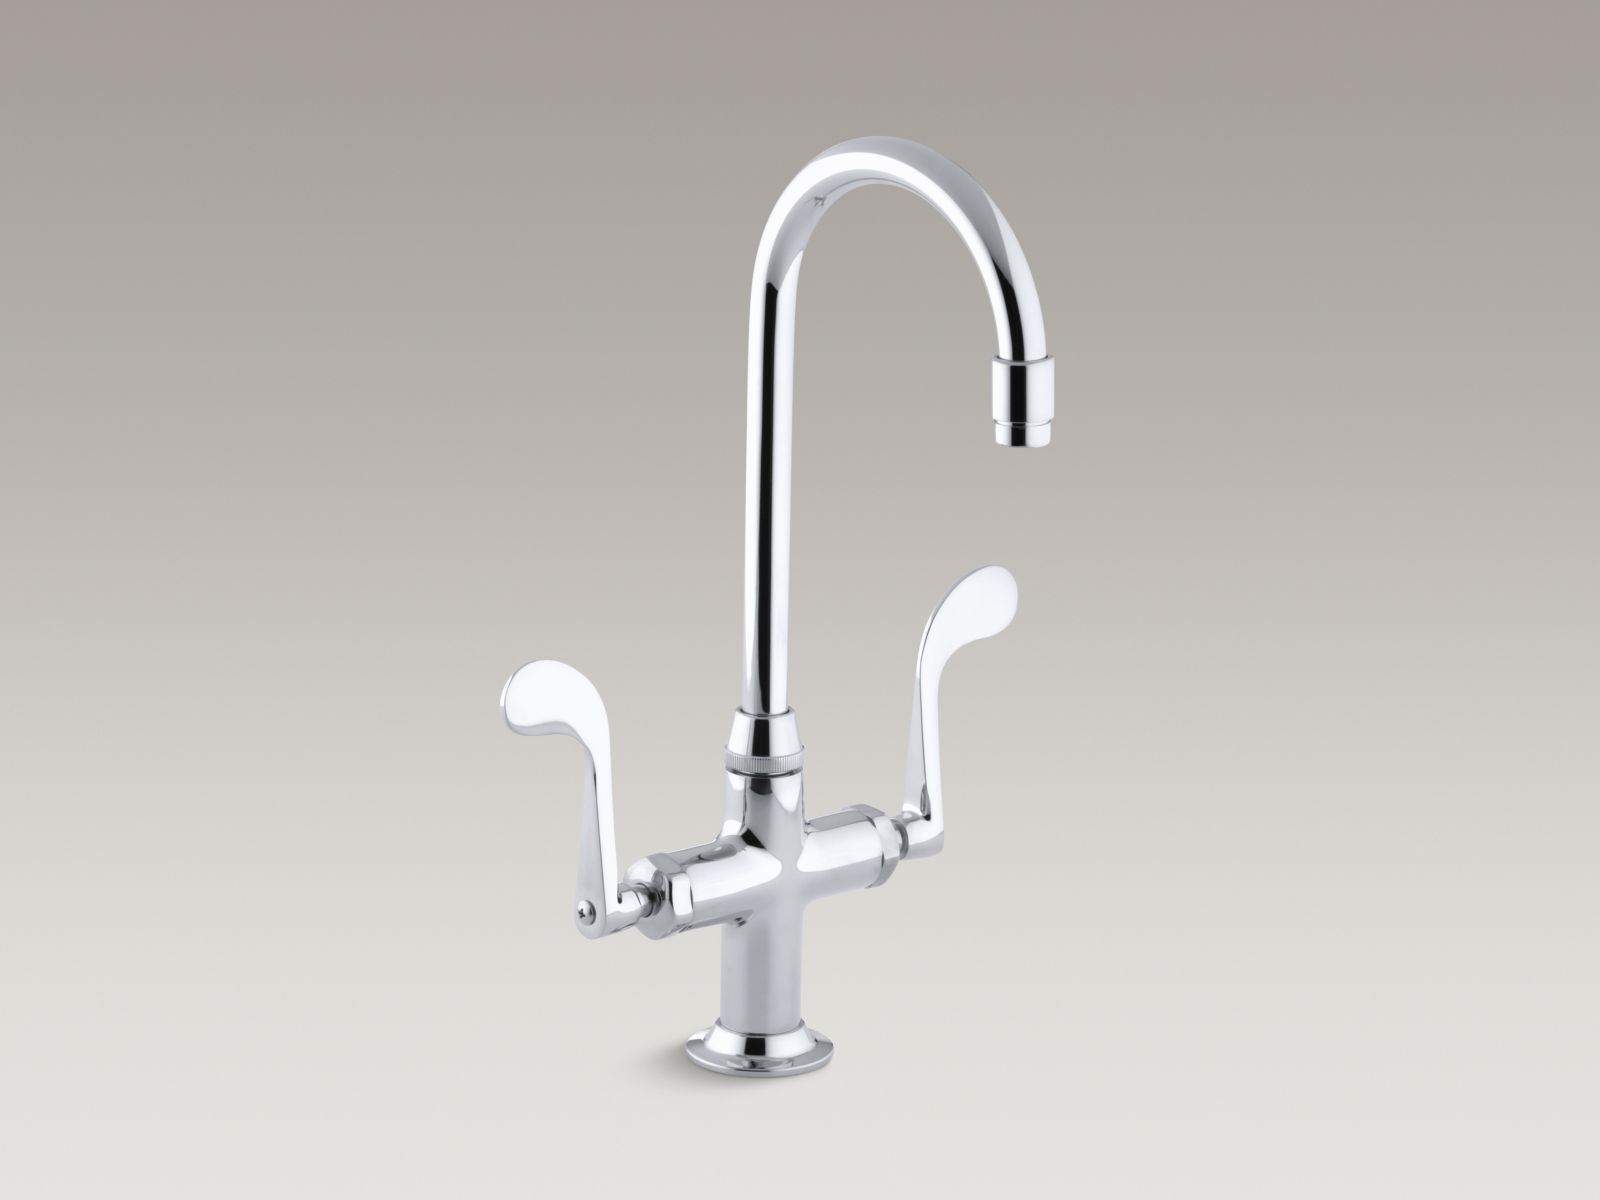 Kohler K-8761-CP Essex Entertainment Sink Faucet Polished Chrome